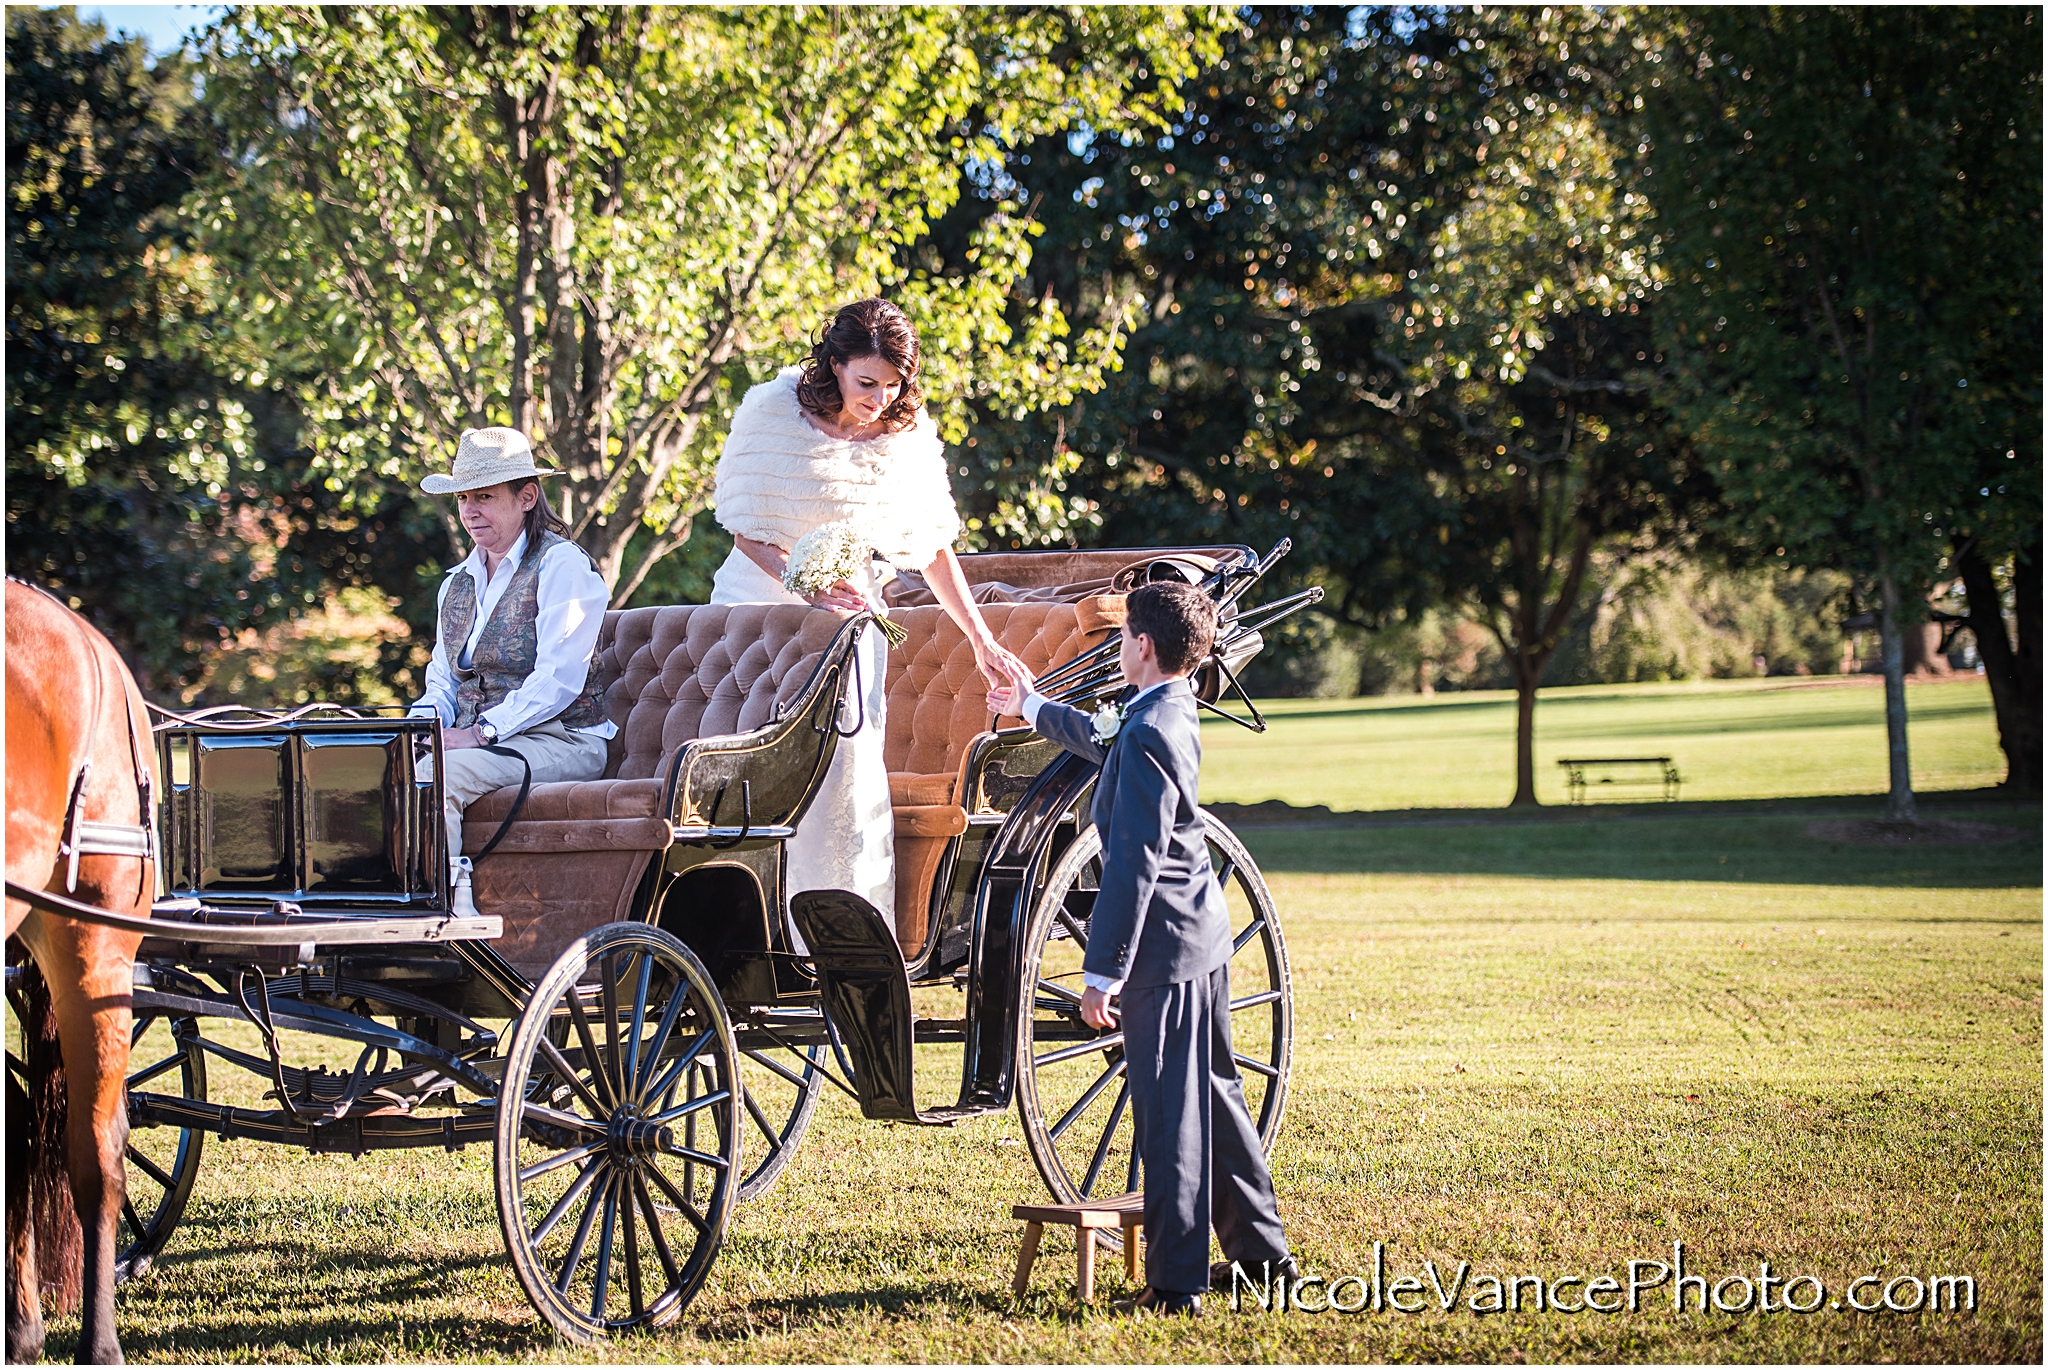 The bride arrives via horse drawn carriage at her wedding ceremony at Maymont Park in Richmond Virginia.